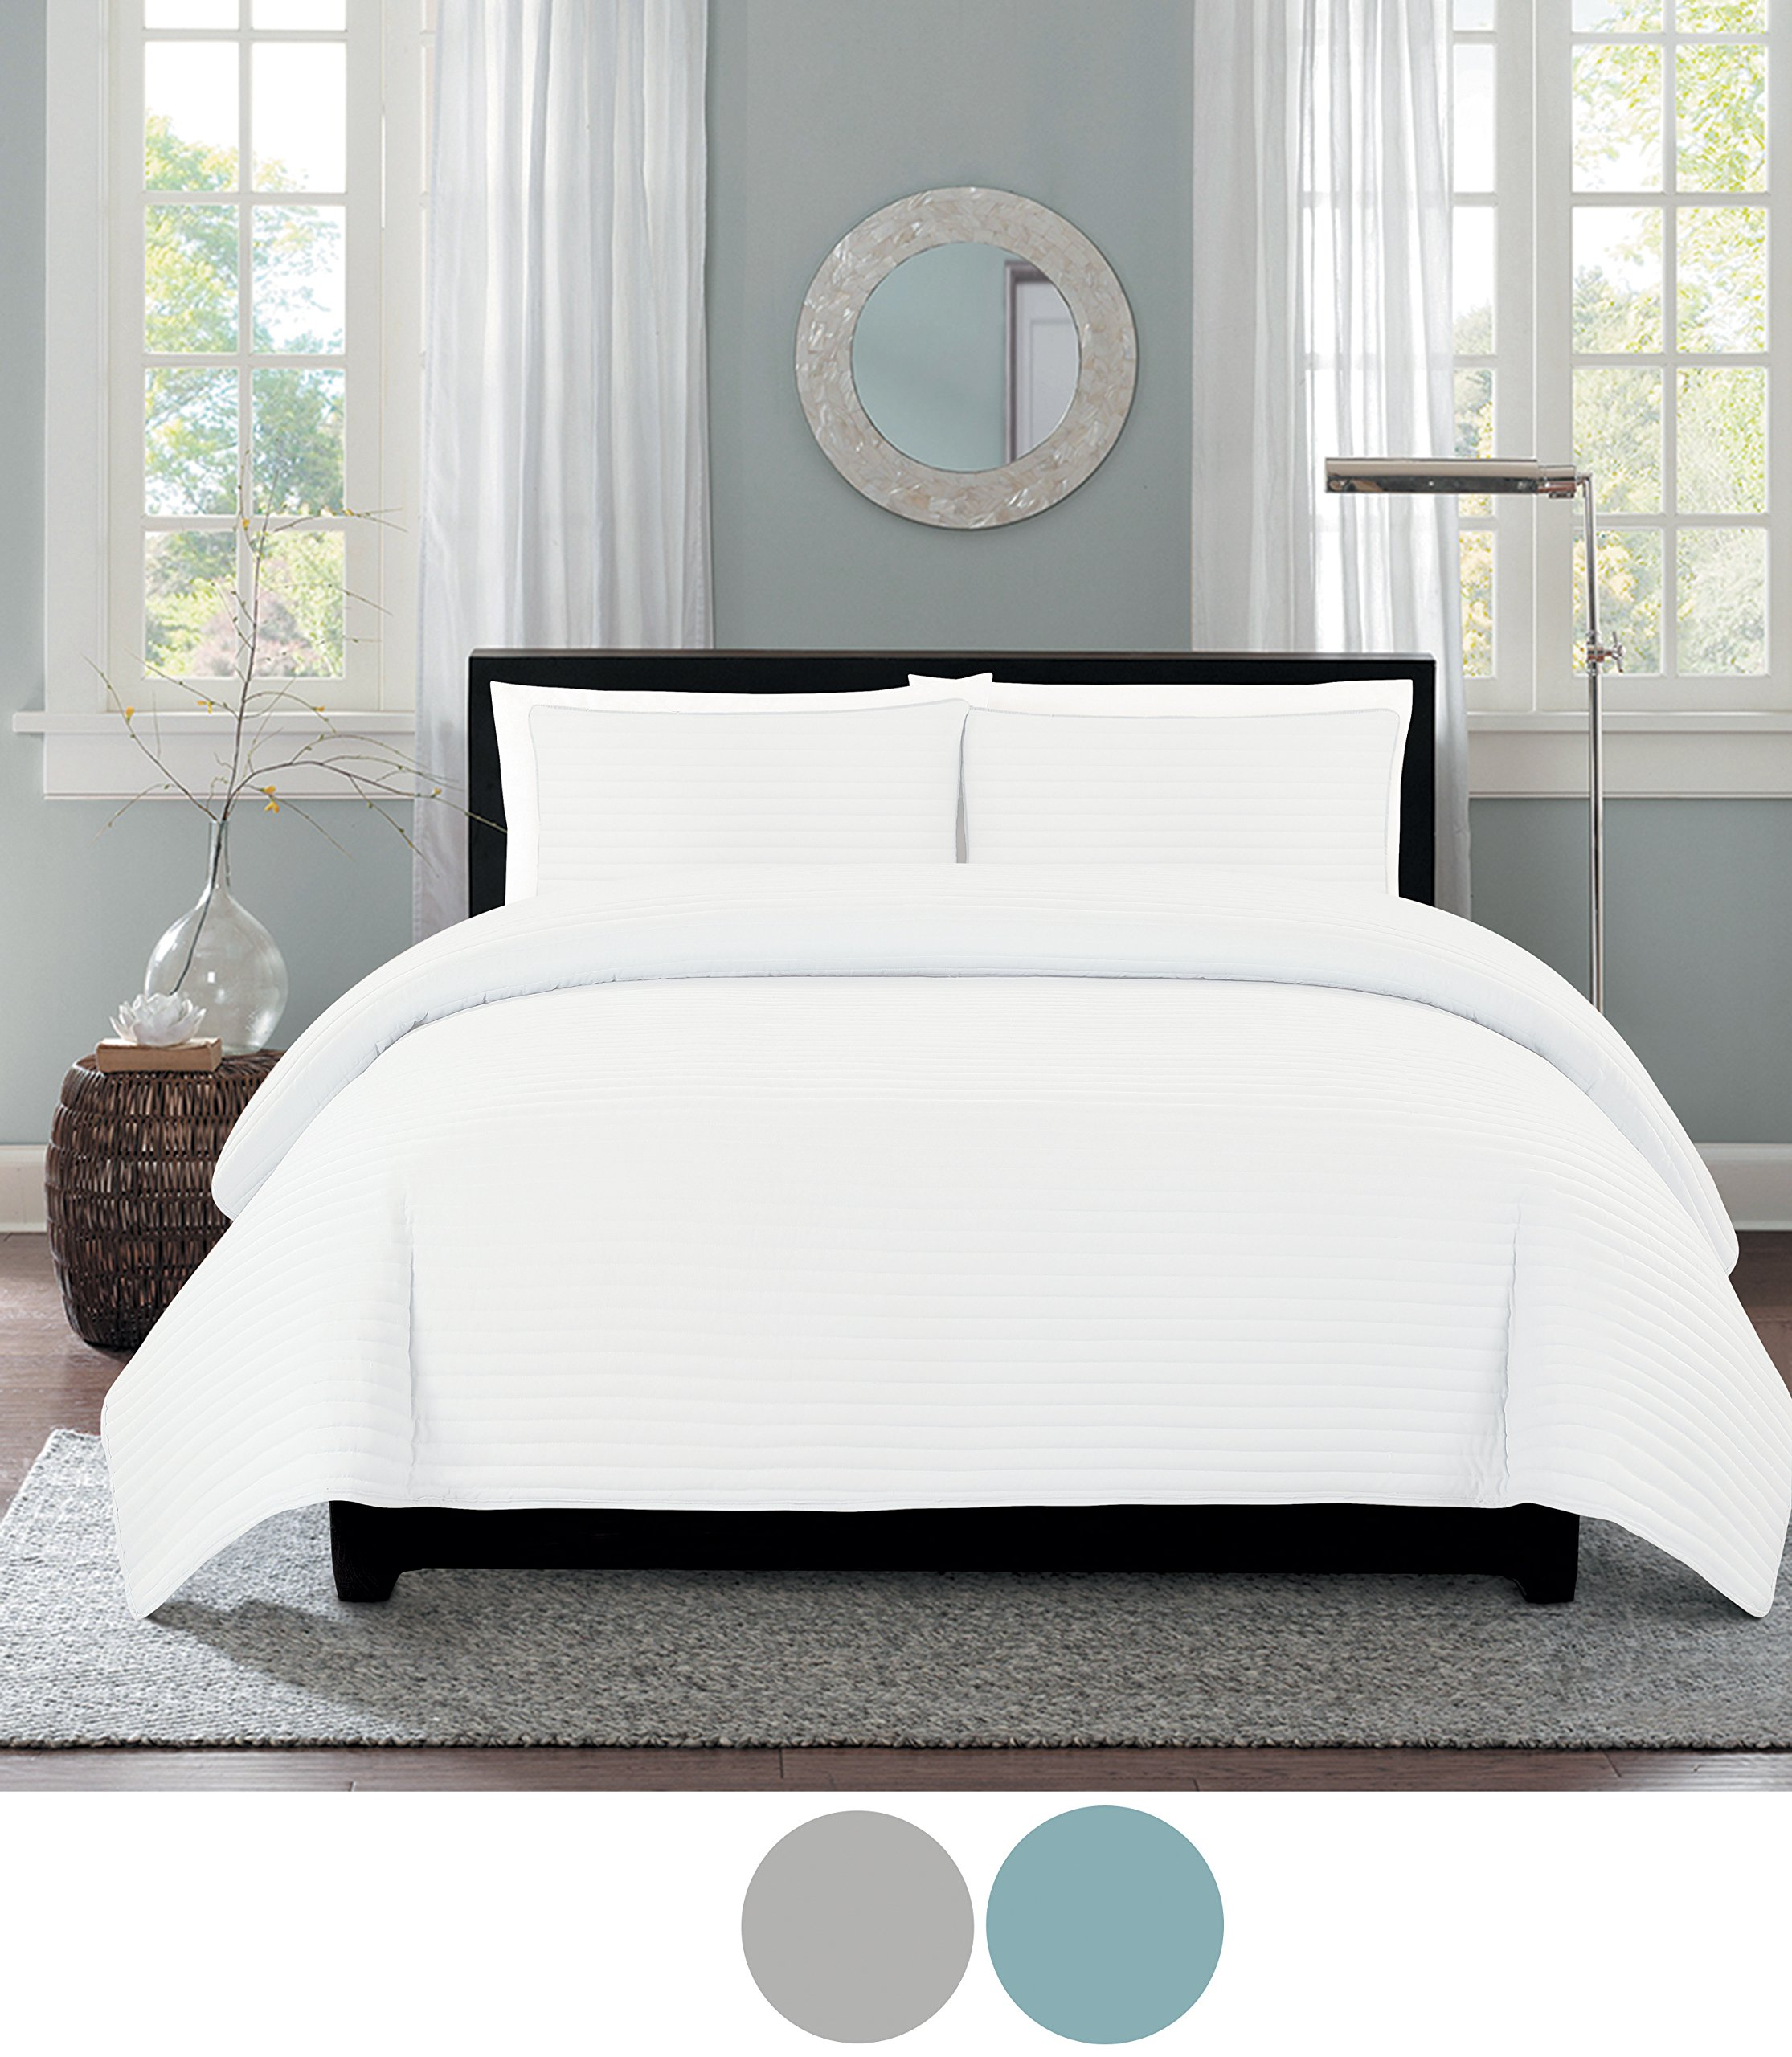 Eastend Home Fashions One Inch Channel quilt set, Twin, Bright White